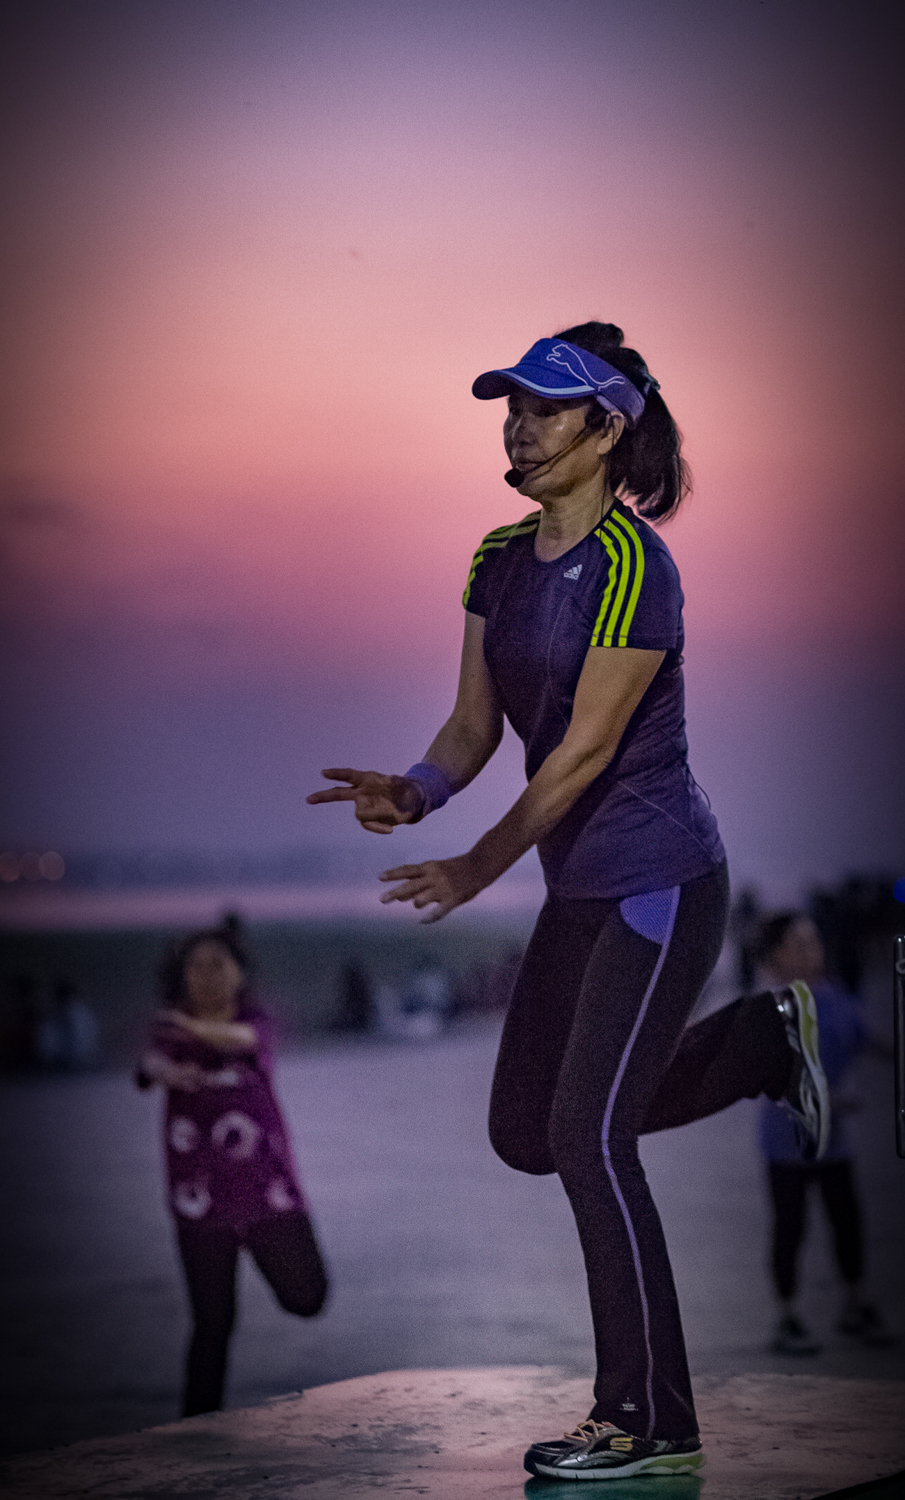 Every evening group fitness sessions are held on Vientiane's riverside promenade.